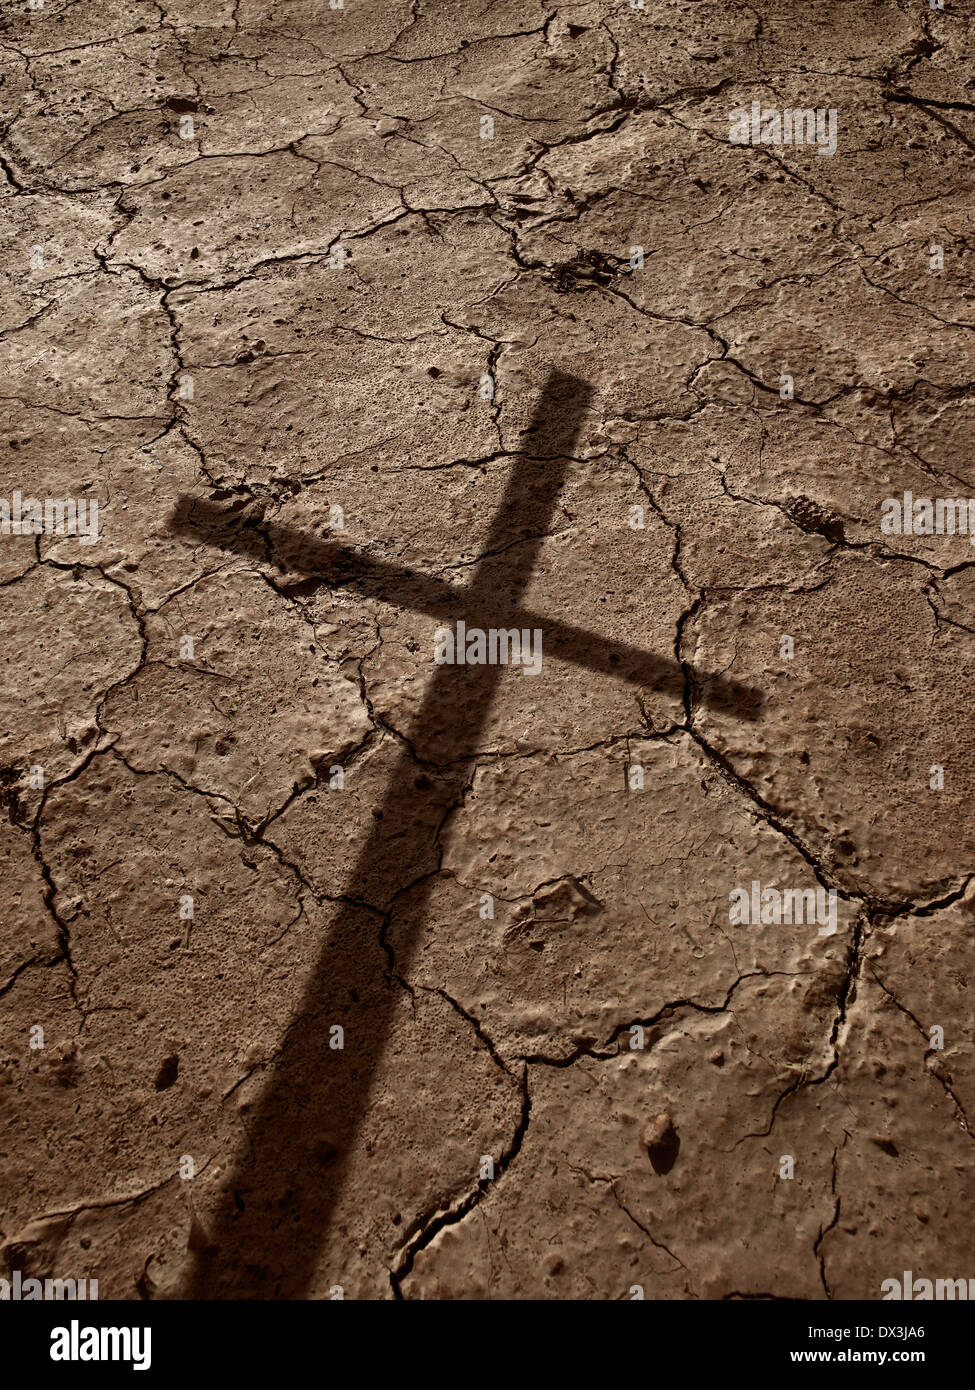 Shadow Of Cross On Dried Earth - Stock Image